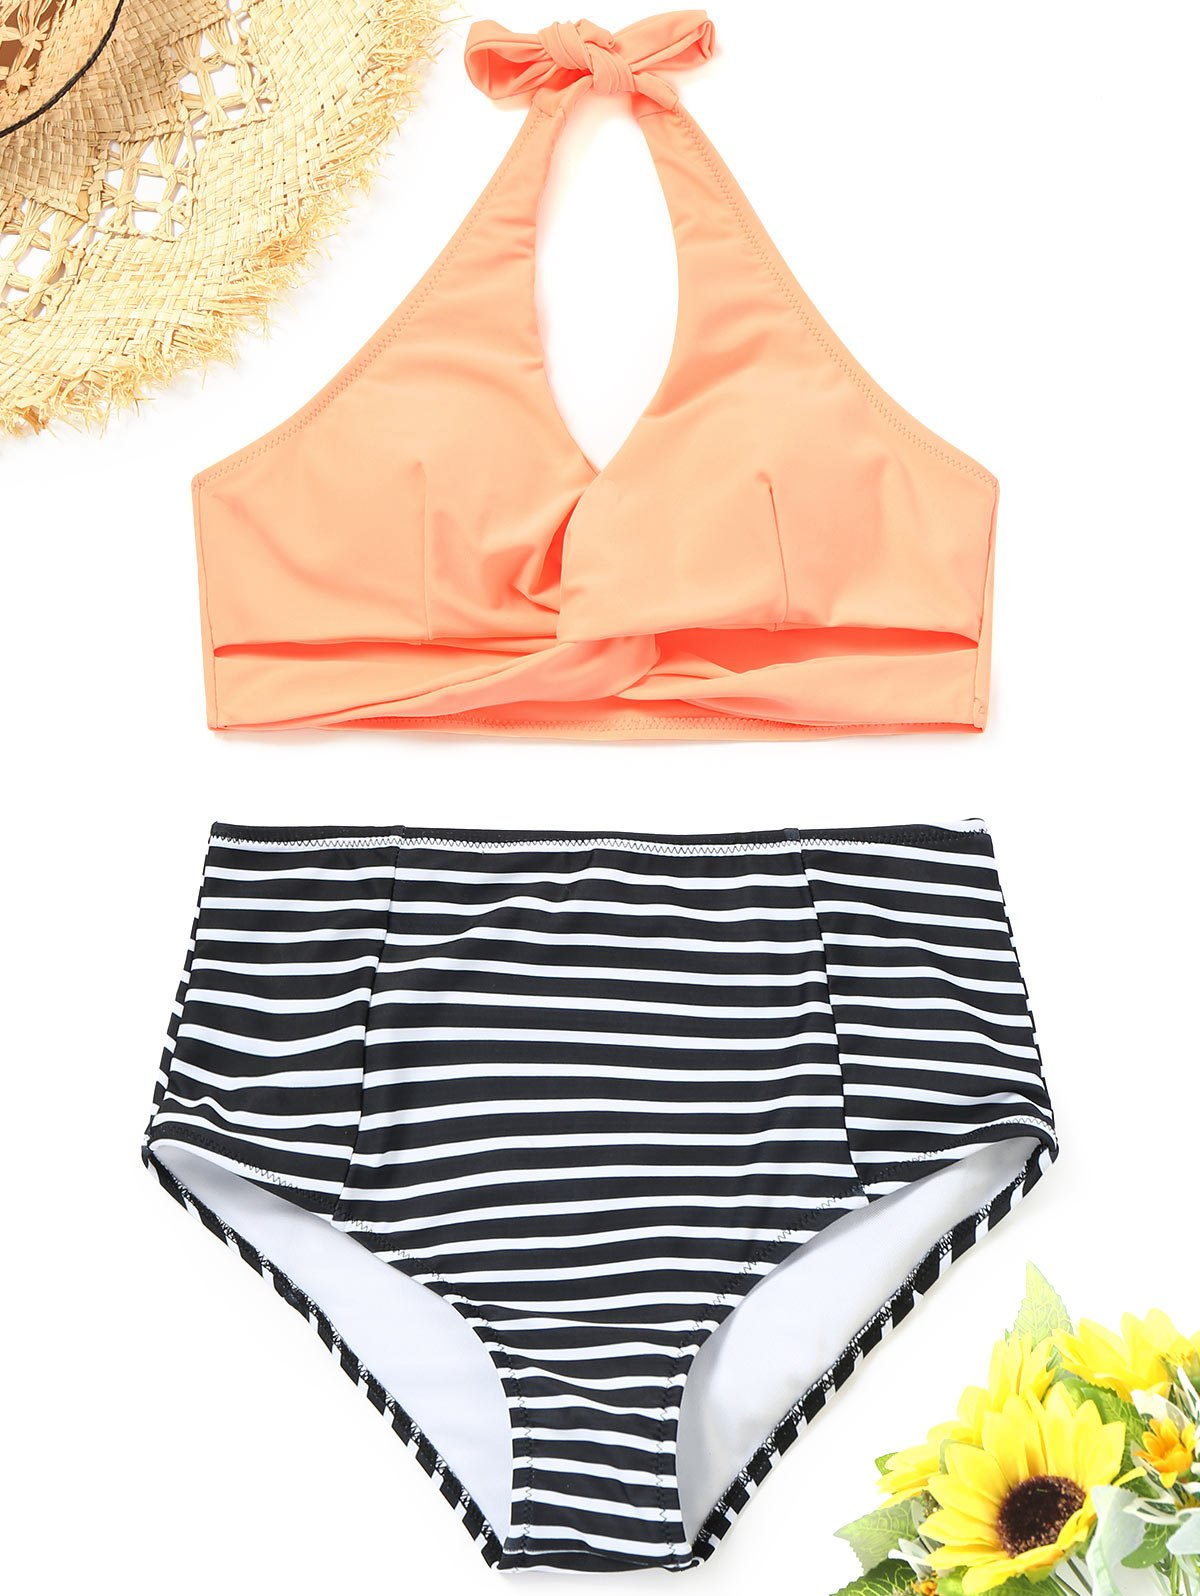 Twist Striped Bikini Top with High Waisted Bottoms 246483202